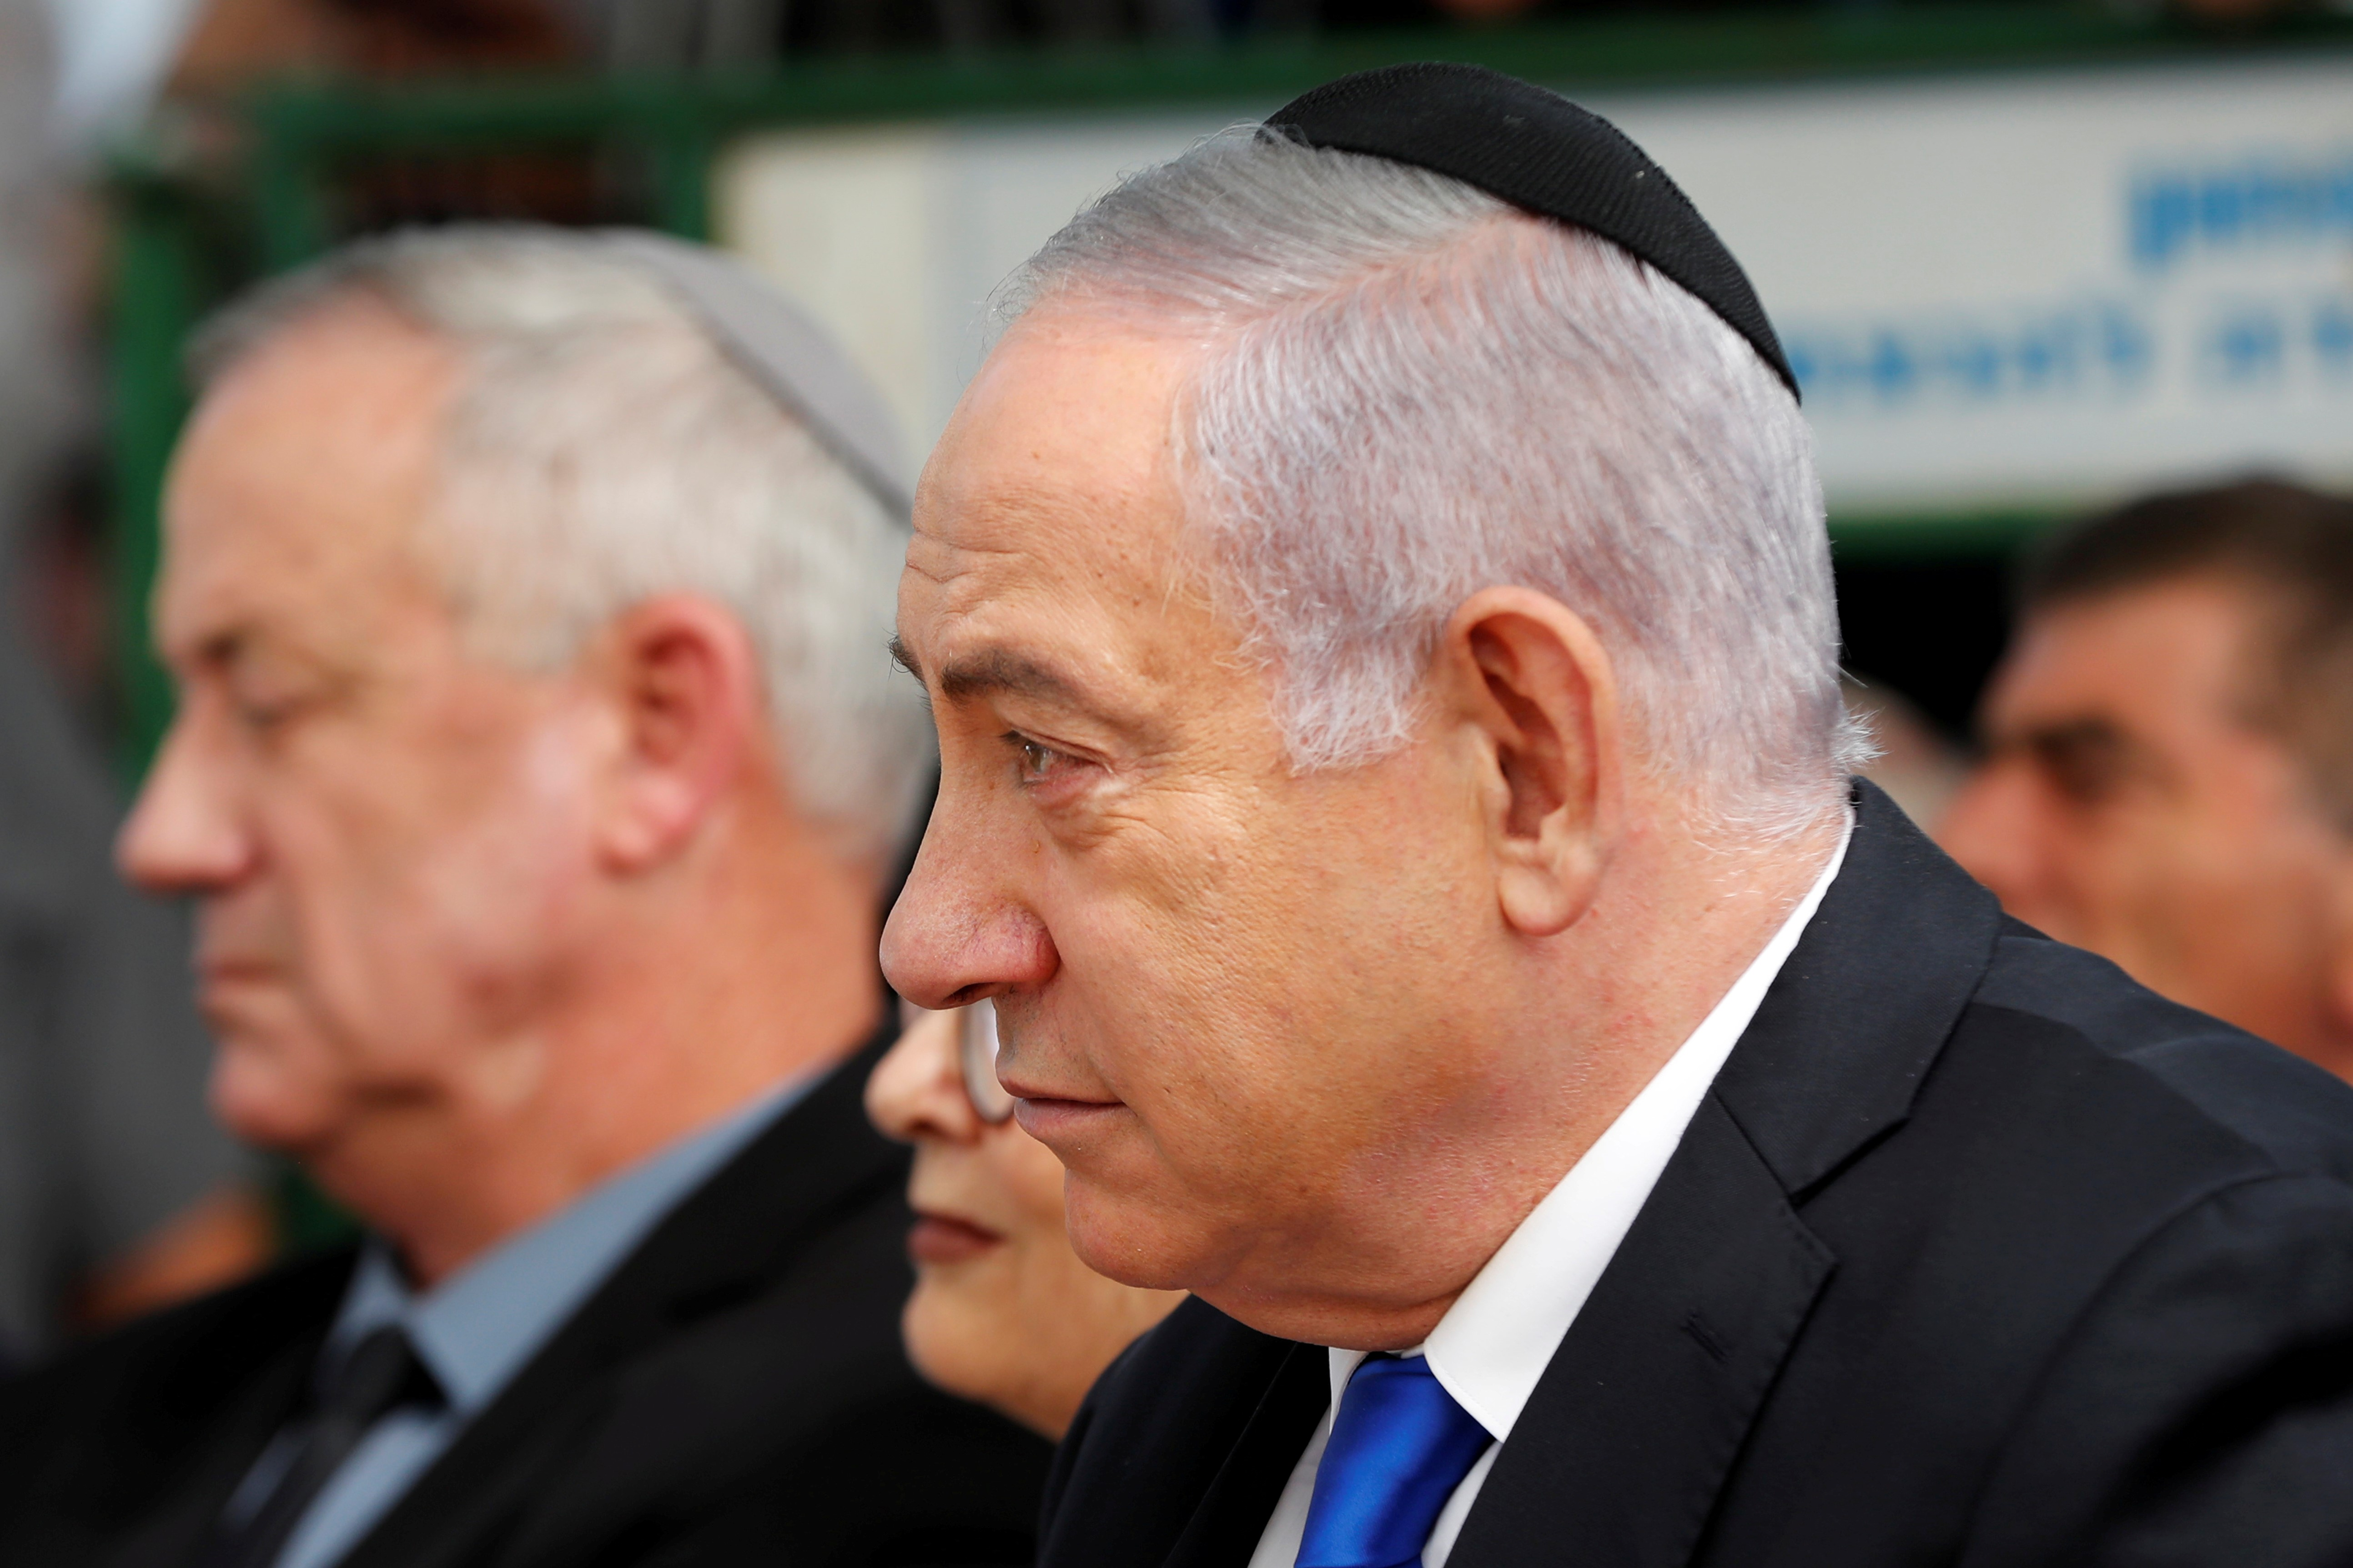 Israeli Prime Minister Benjamin Netanyahu sits next to Benny Gantz, leader of the Blue and White party on 22 September (Reuters)